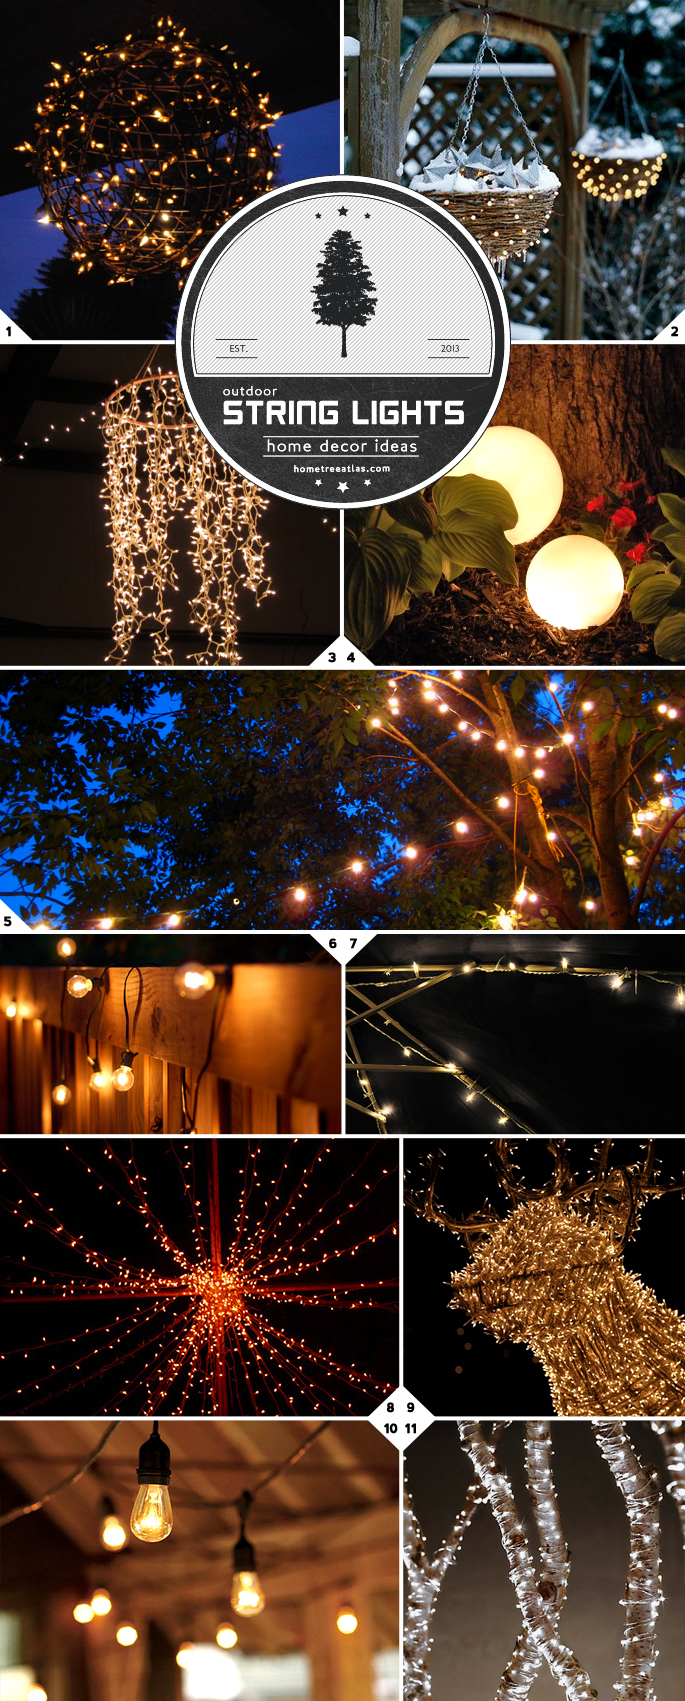 Home Decor Ideas: Creative Ways of Using String Lights ... on String Light Ideas Backyard id=64701